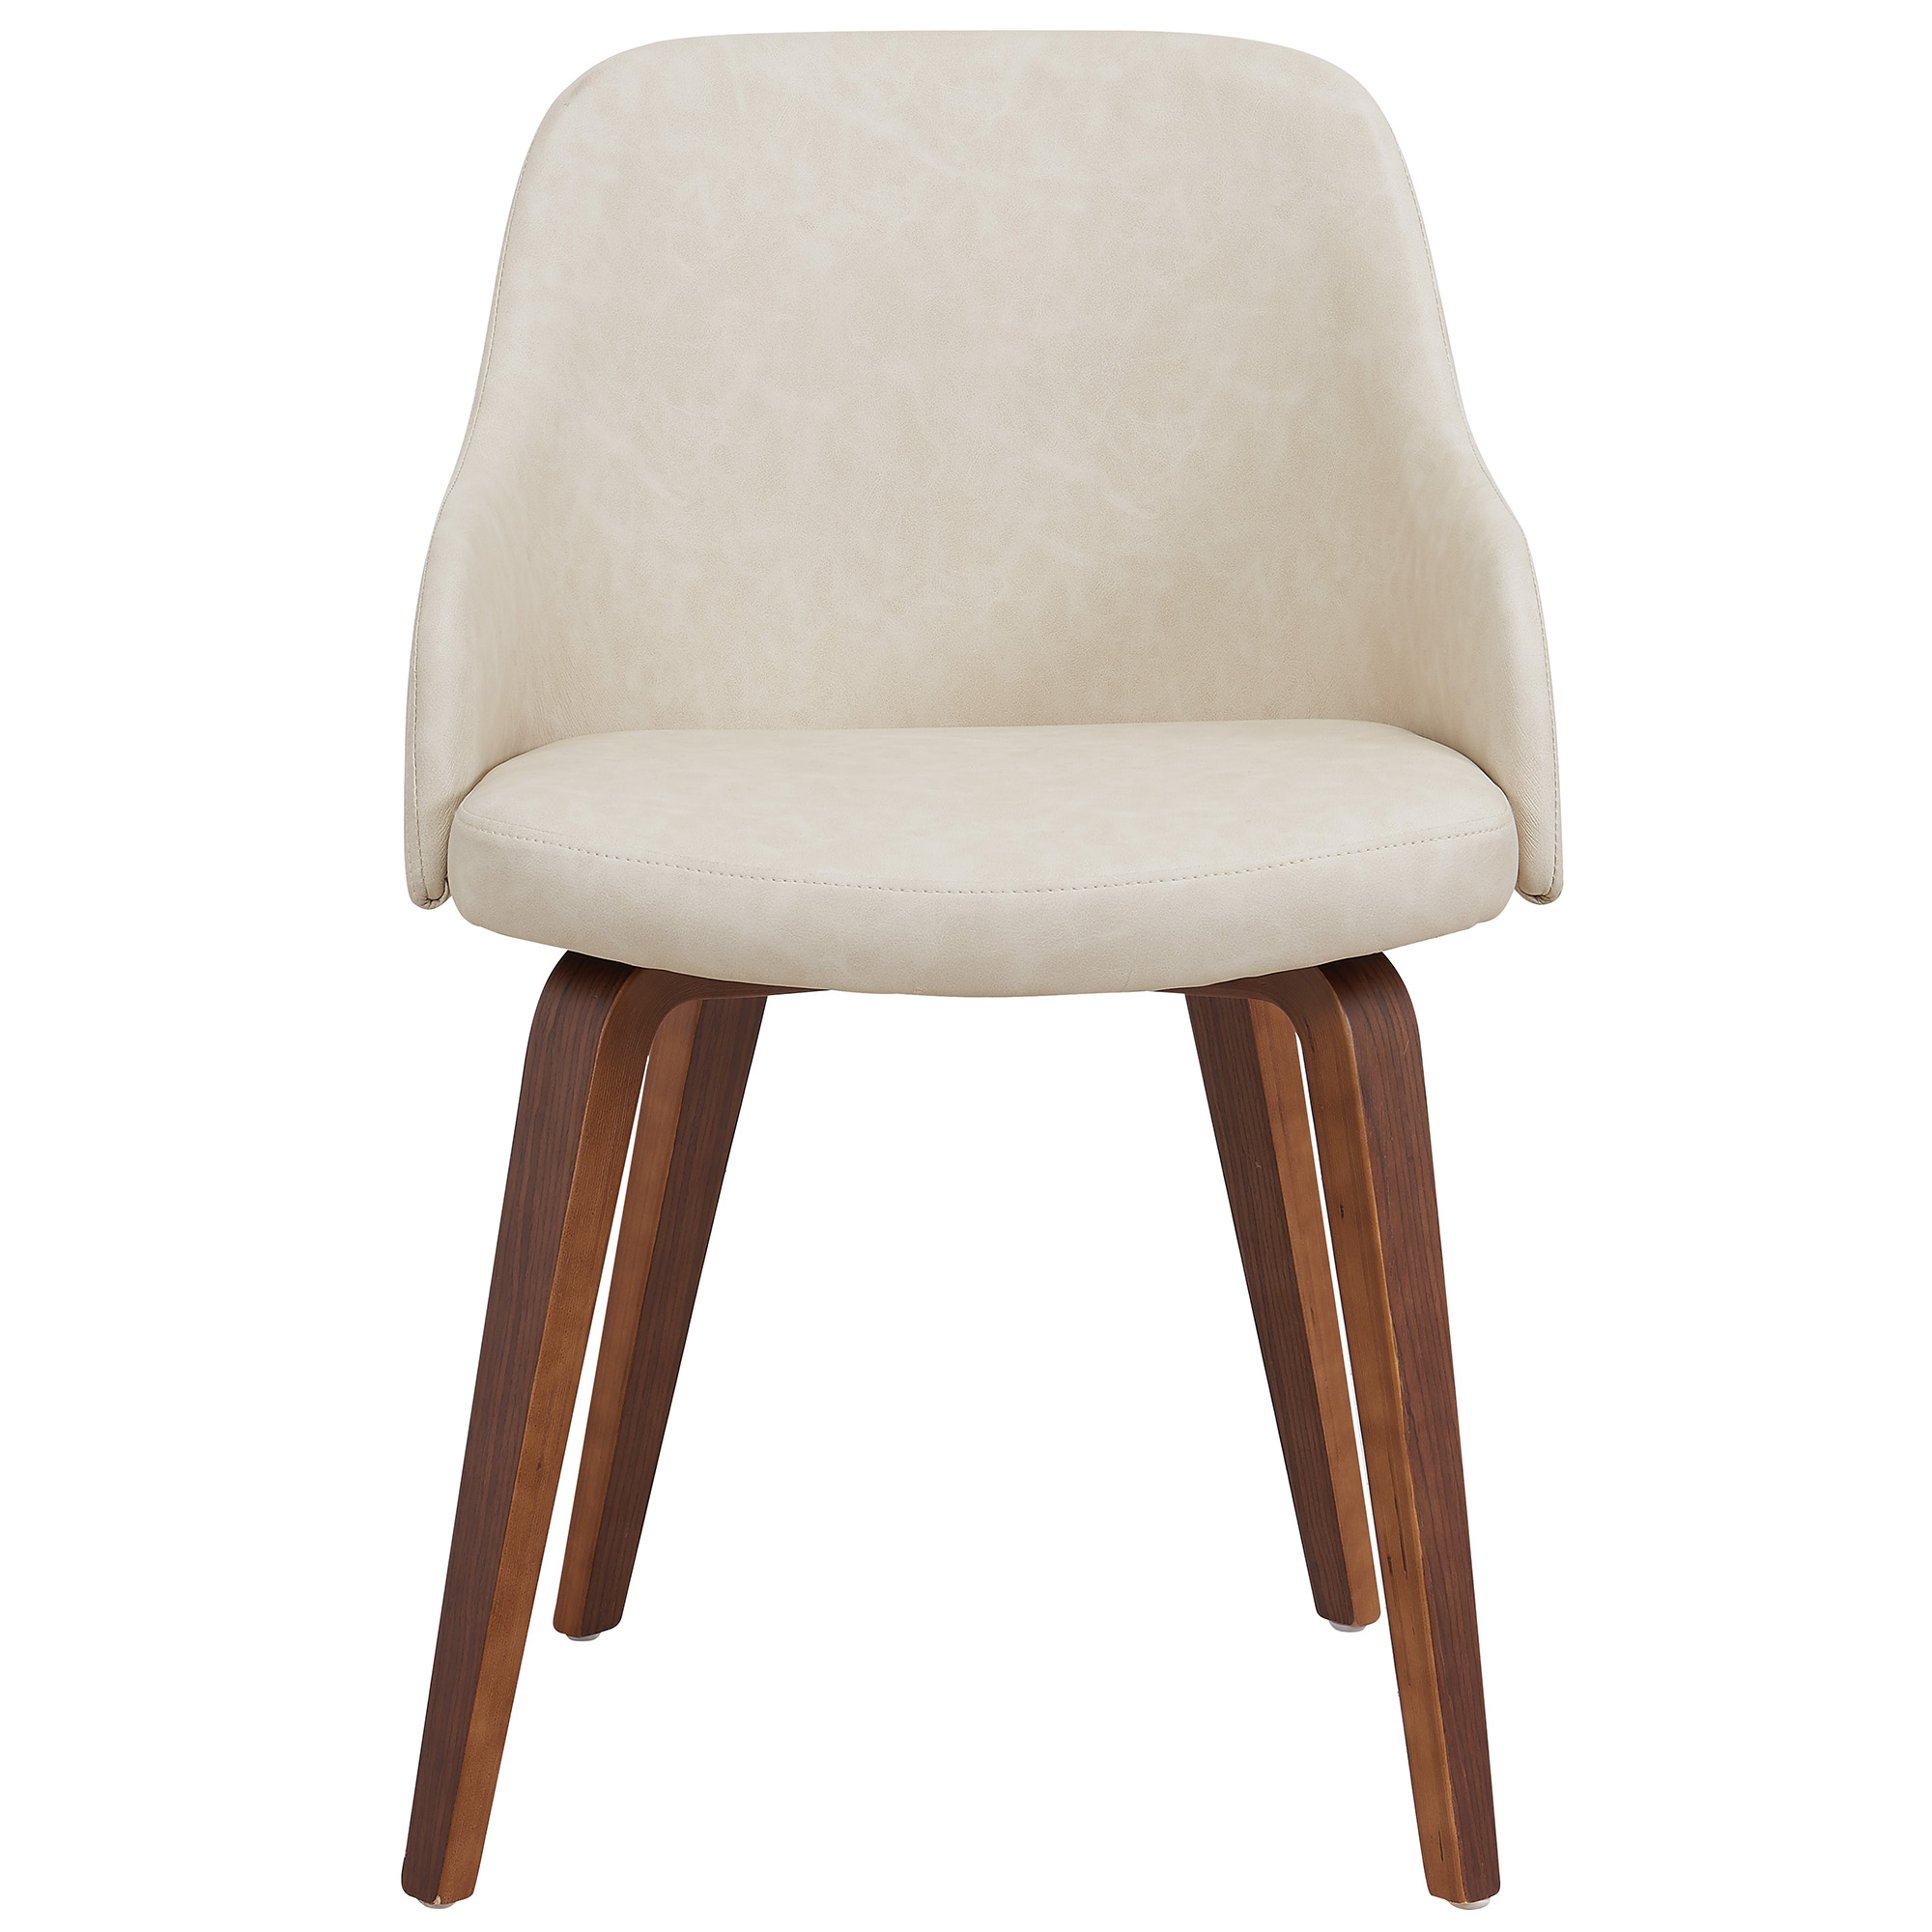 CASTILO-ACCENT CHAIR-IVORY, 841173029777, Accent Chairs by Midha Furniture to Brampton, Mississauga, Etobicoke, Toronto, Scraborough, Caledon, Oakville, Markham, Ajax, Pickering, Oshawa, Richmondhill, Kitchener, Hamilton and GTA area